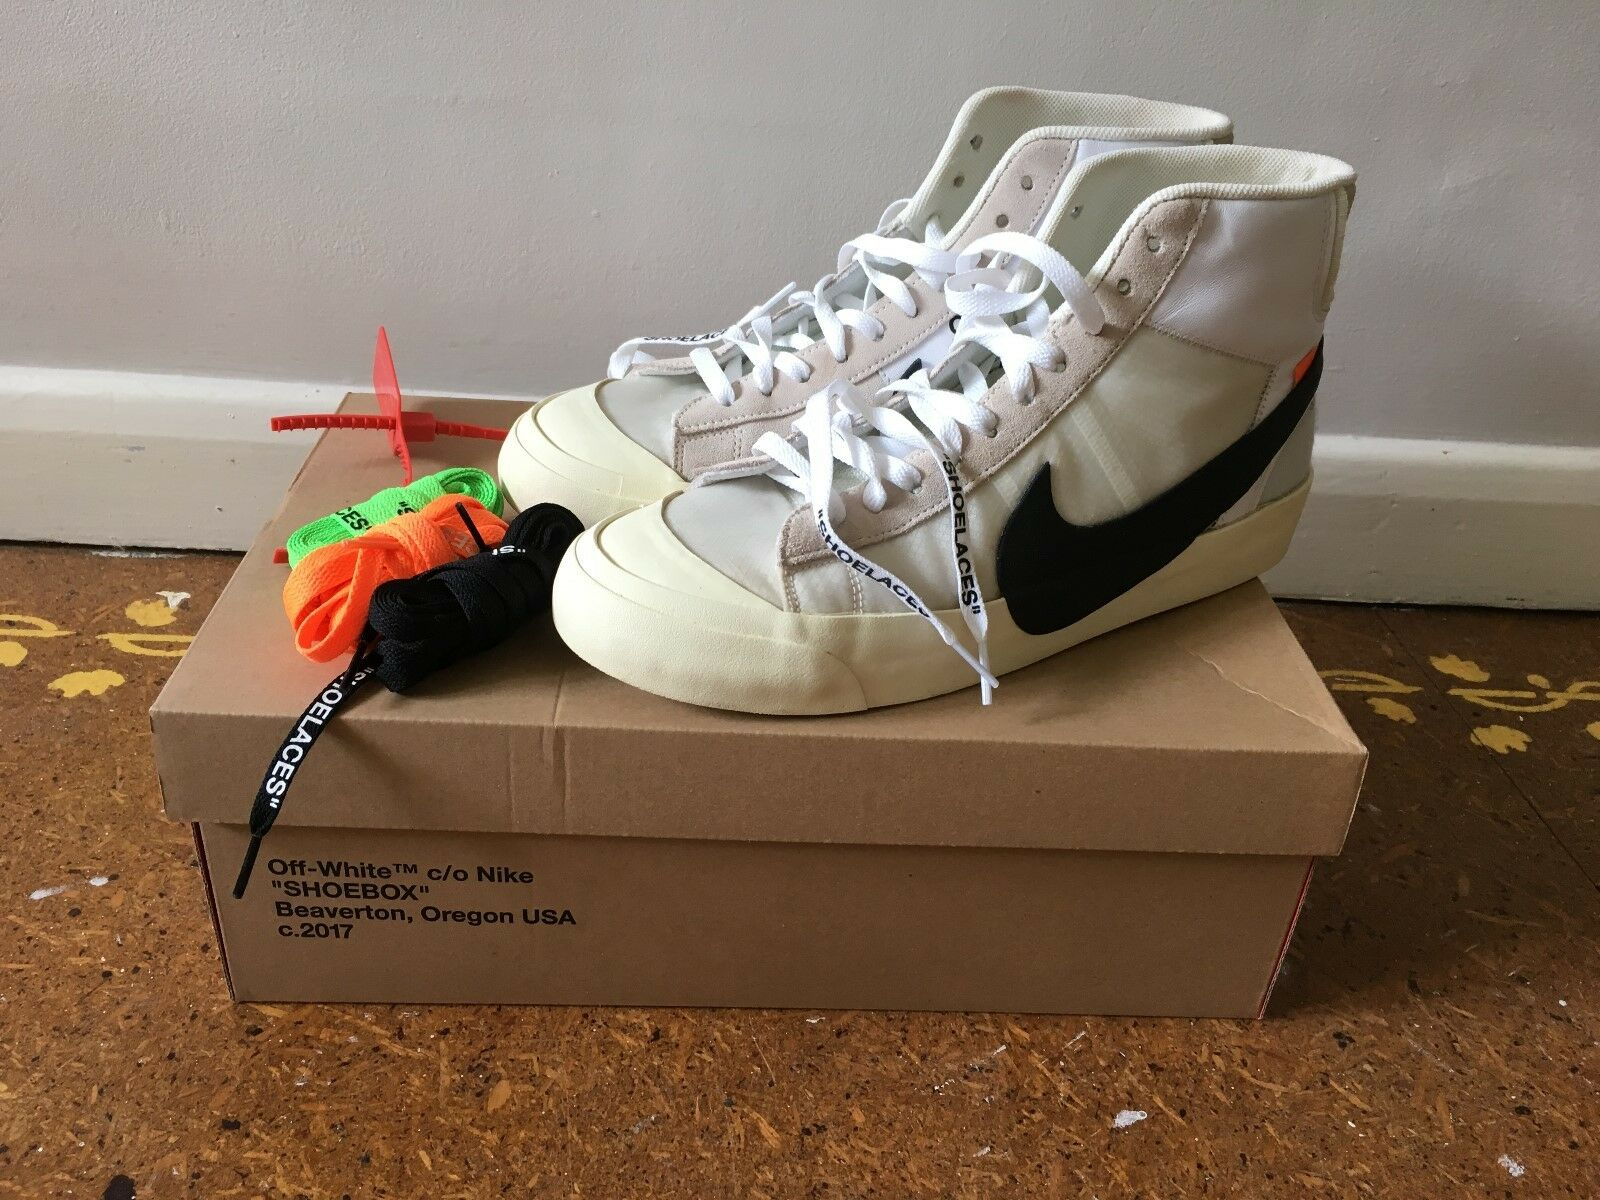 Nike Off-White 'The Ten' Blazers by Virgil Abloh. UK size 10, 100% genuine New shoes for men and women, limited time discount